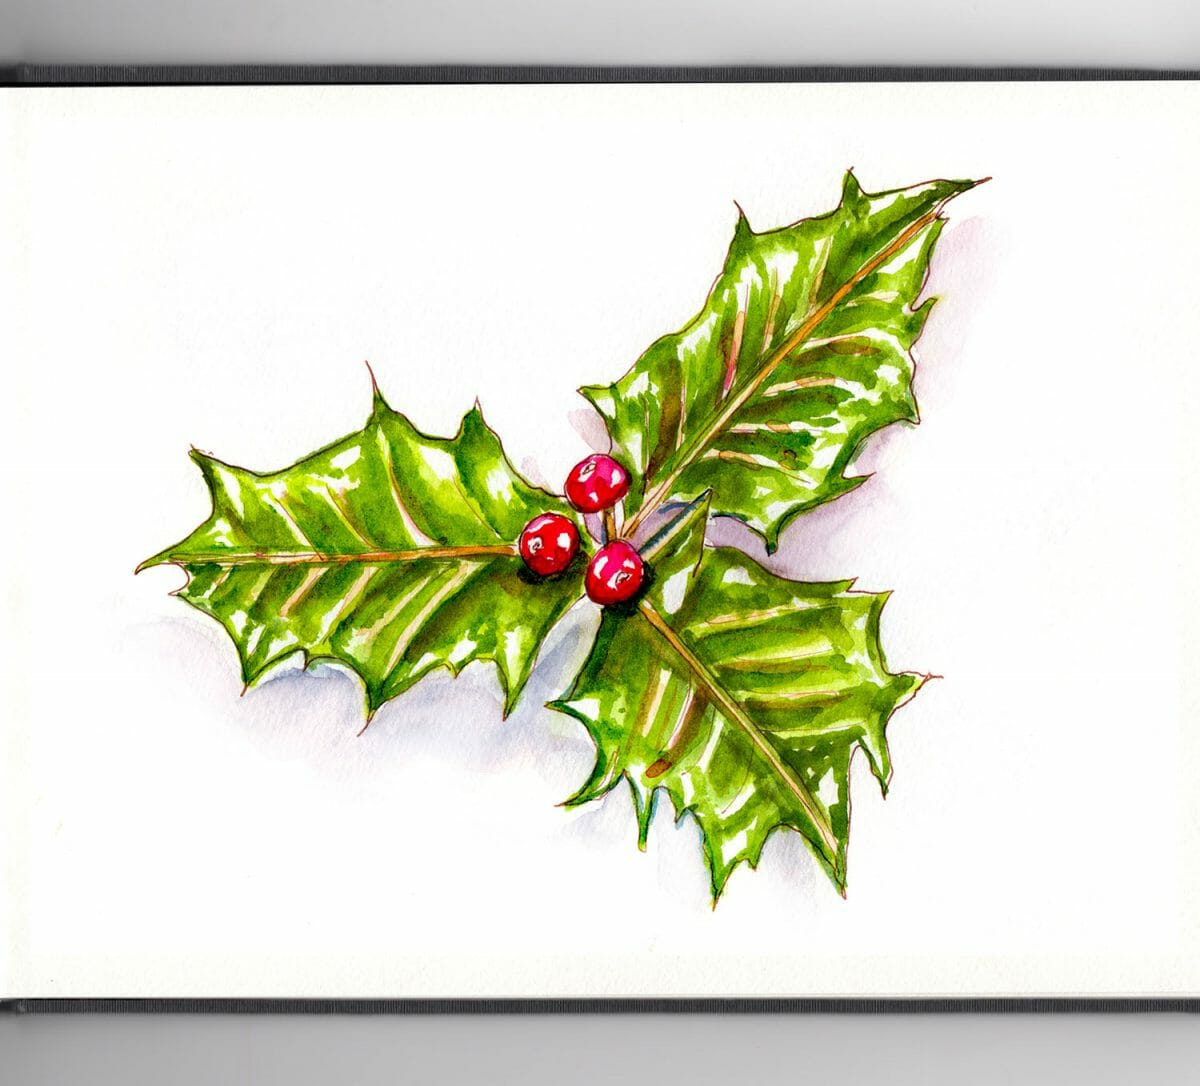 #WorldWatercolorGroup - Day 4 - Haul Out The Holly - Doodlewash